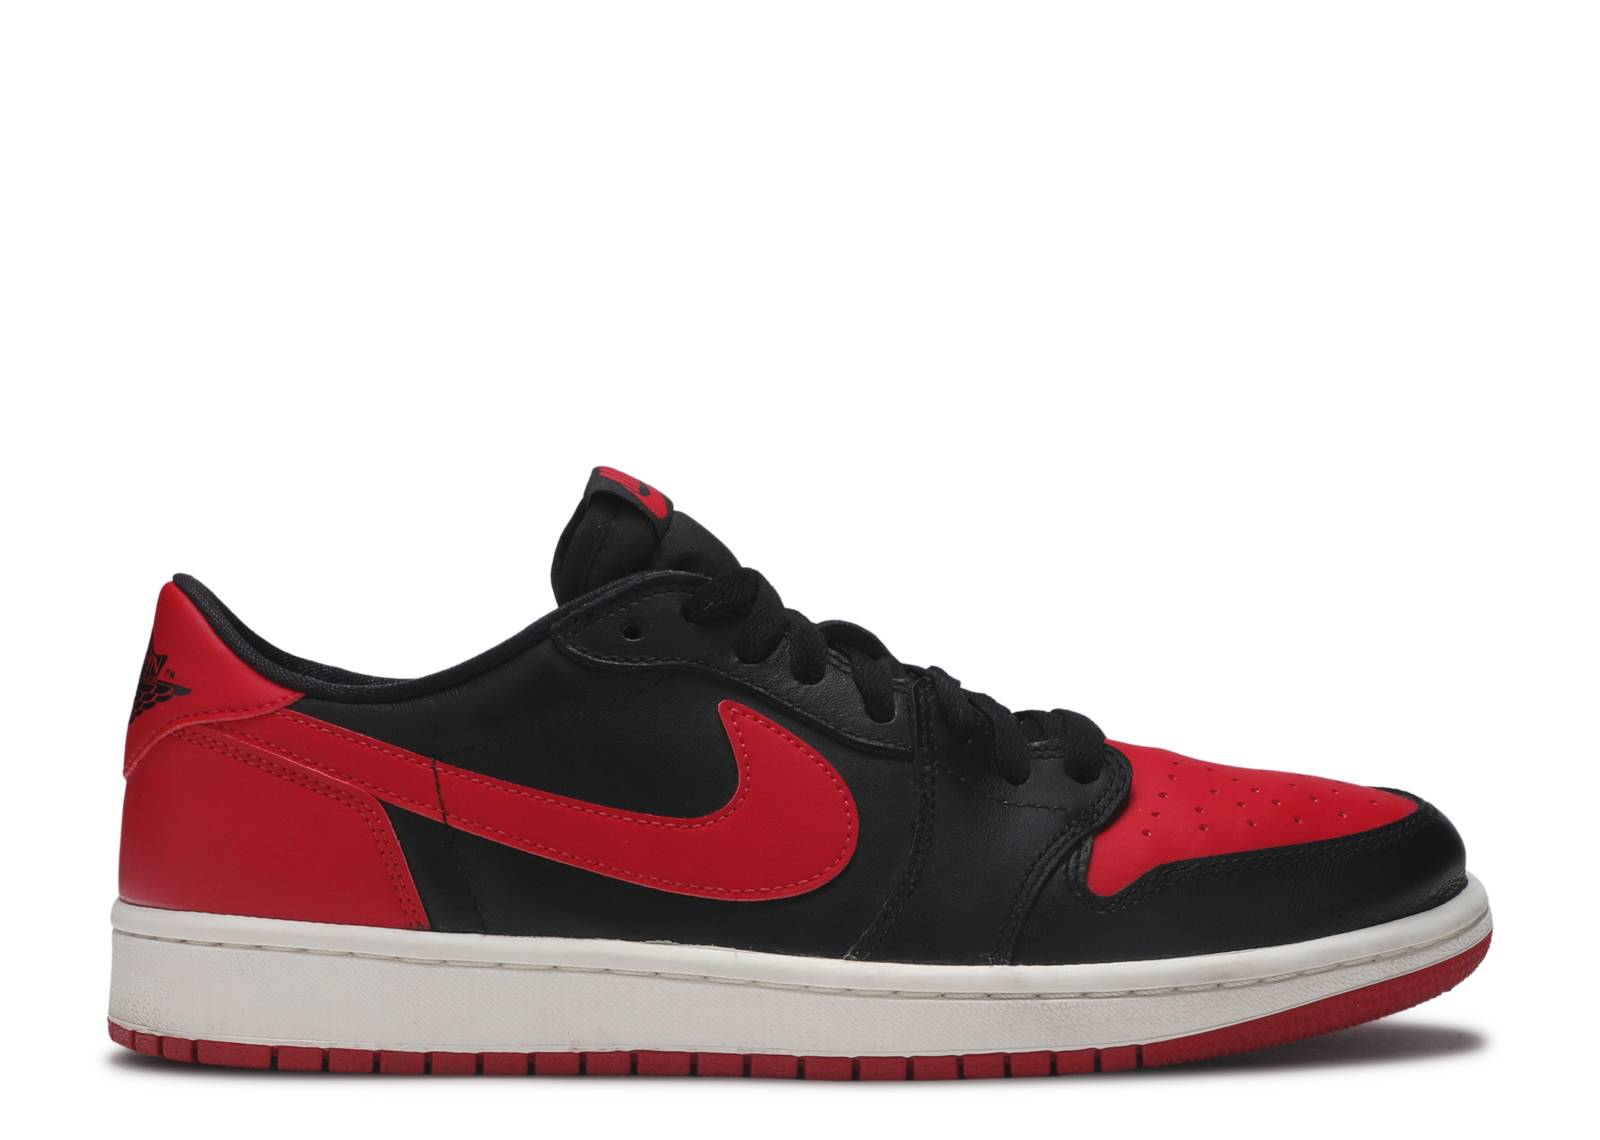 948b56d814a1 Air Jordan 1 Retro Low Og